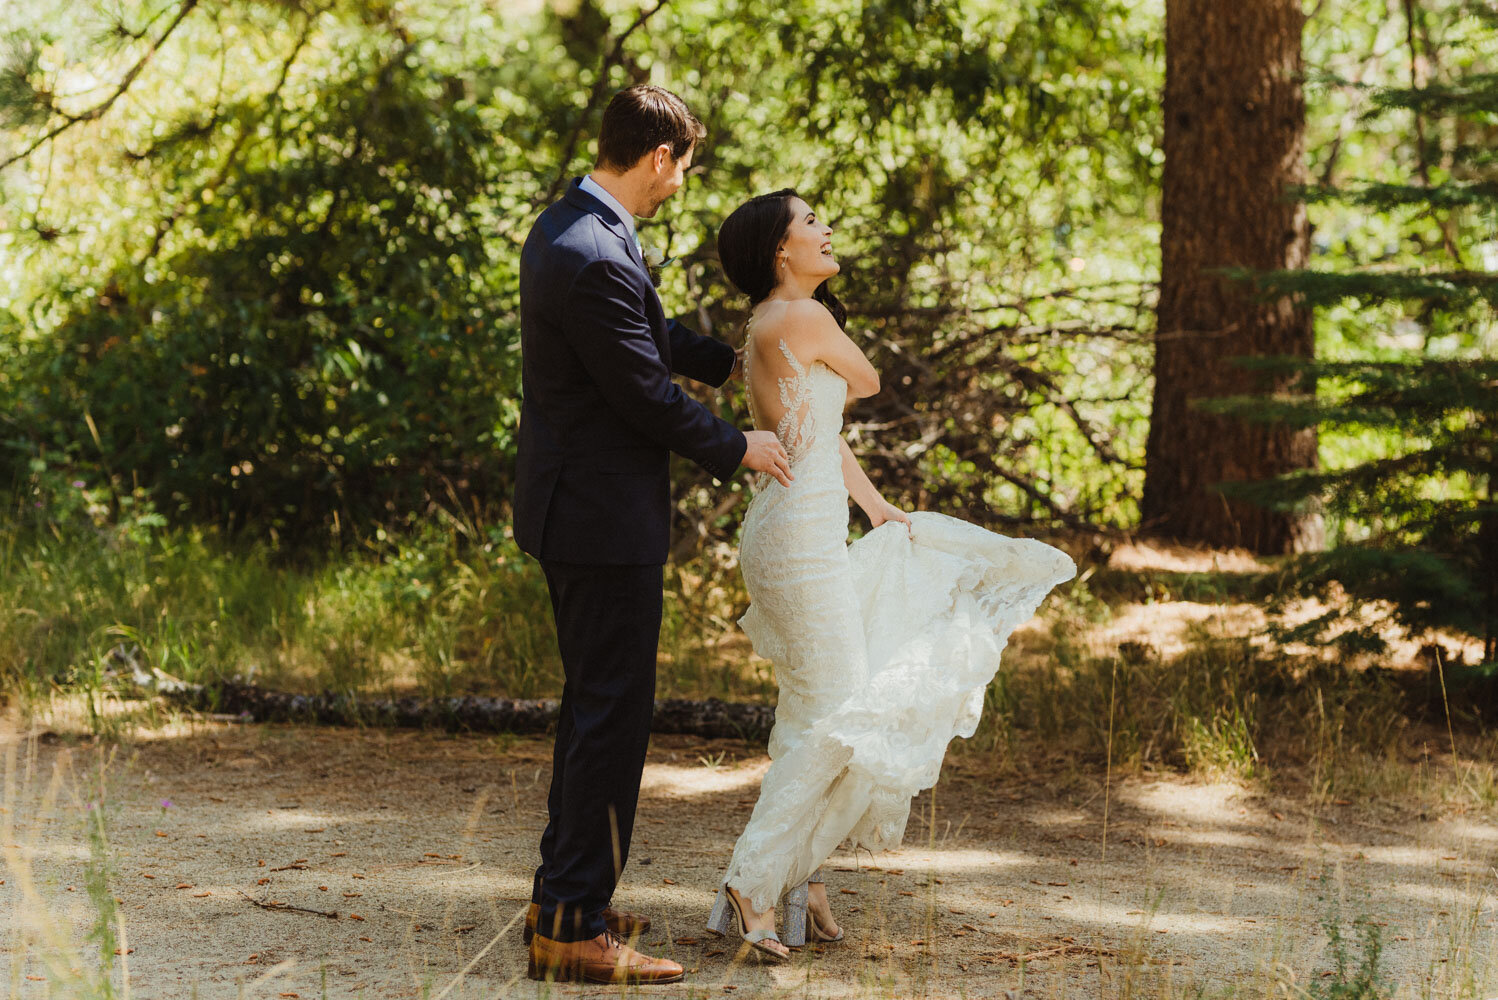 The Chateau Incline Village Wedding, first look photo